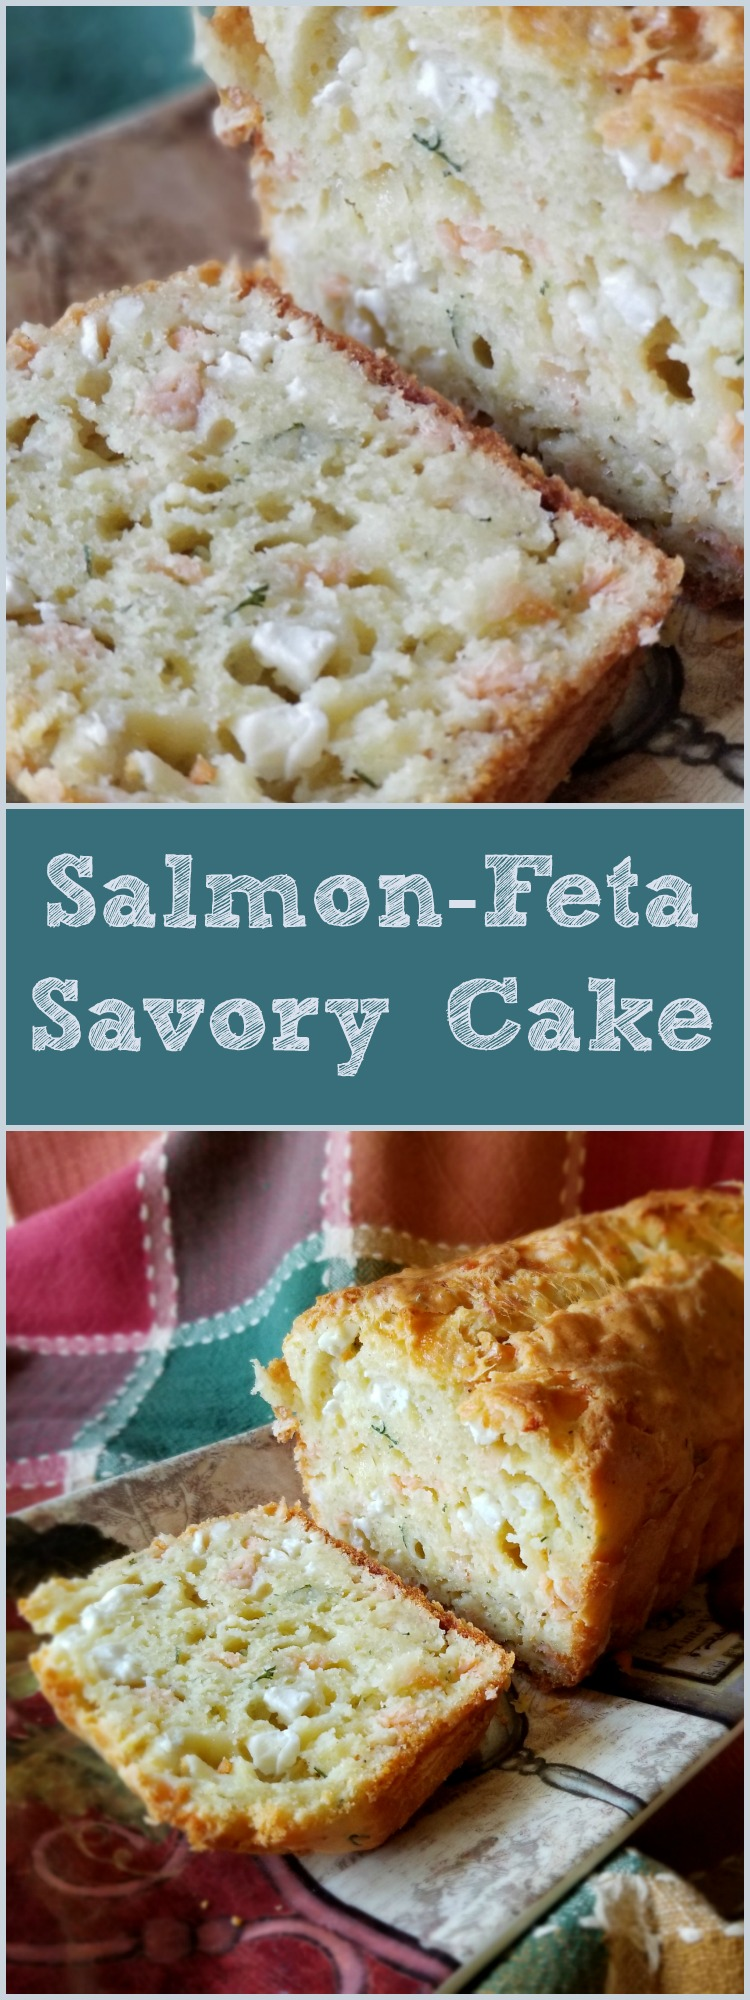 Smoked salmon feta cake - Not only are savory cakes easy to prepare with a few basic ingredients but the flavor possibilities are almost endless.  We always try to include smoked salmon in an appetizer platter but the cost can become prohibitive when you have many guests.